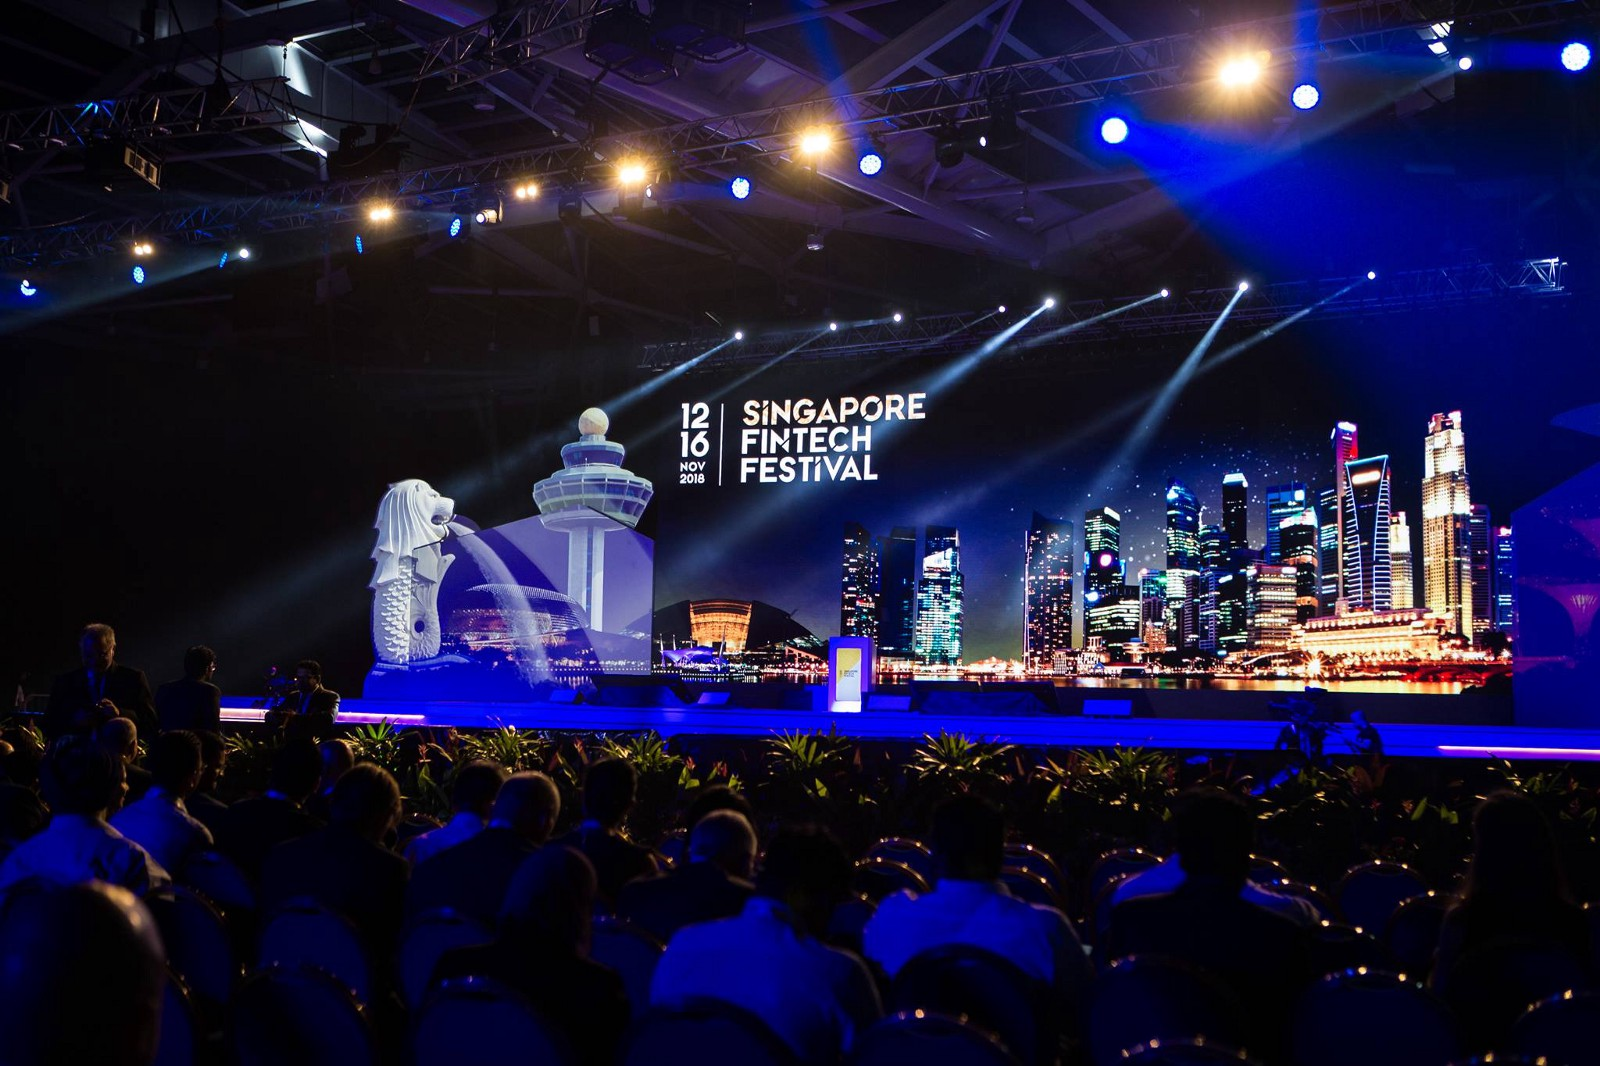 /singapore-fintech-festival-2018-what-should-we-expect-from-the-marriage-of-finance-and-e54516cbb42a feature image